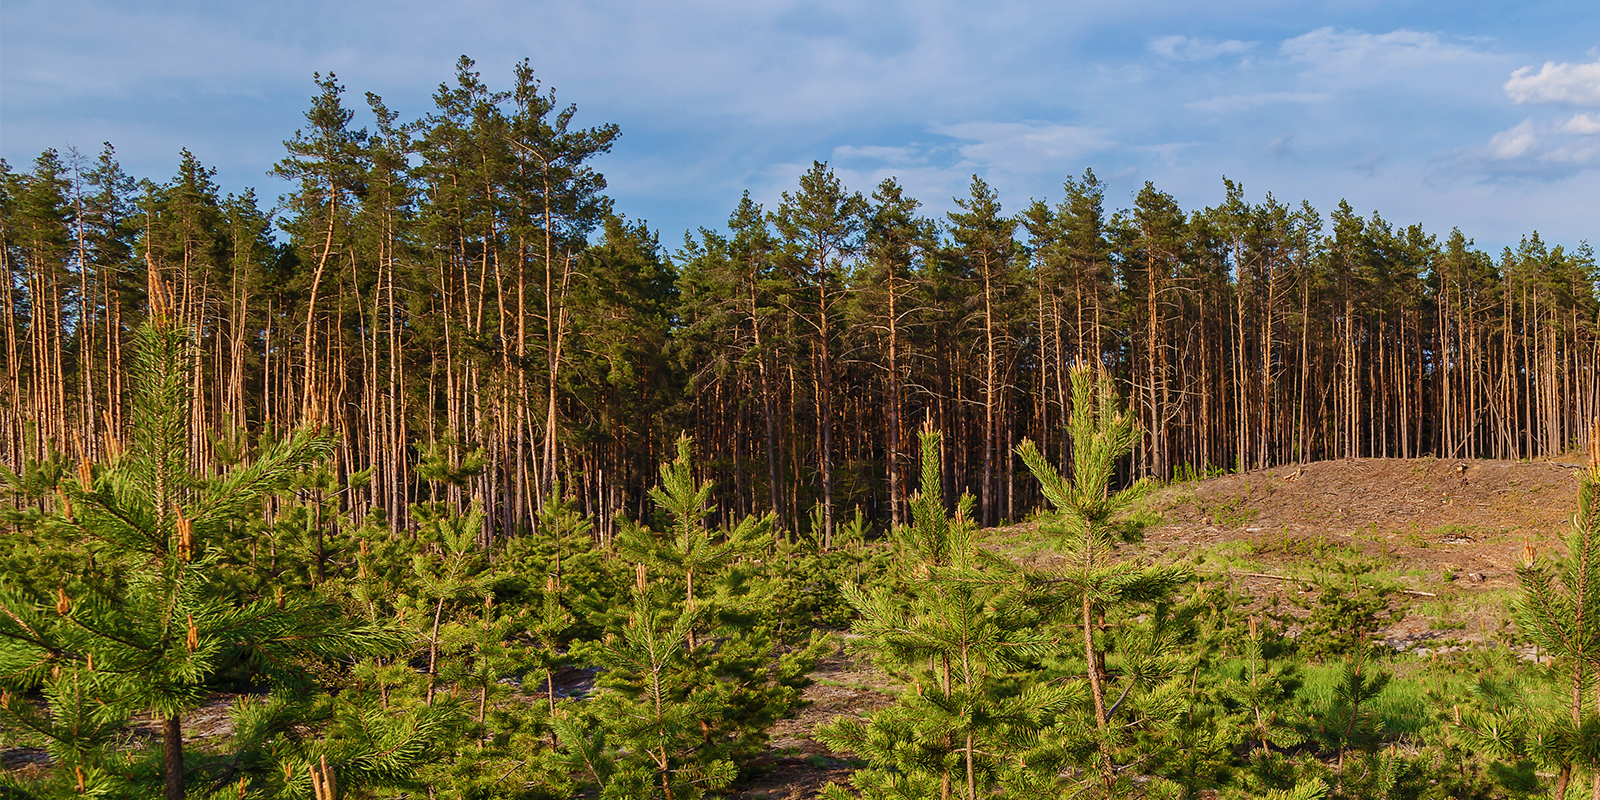 Harvesting Cash from Public Tree-Growing Firms